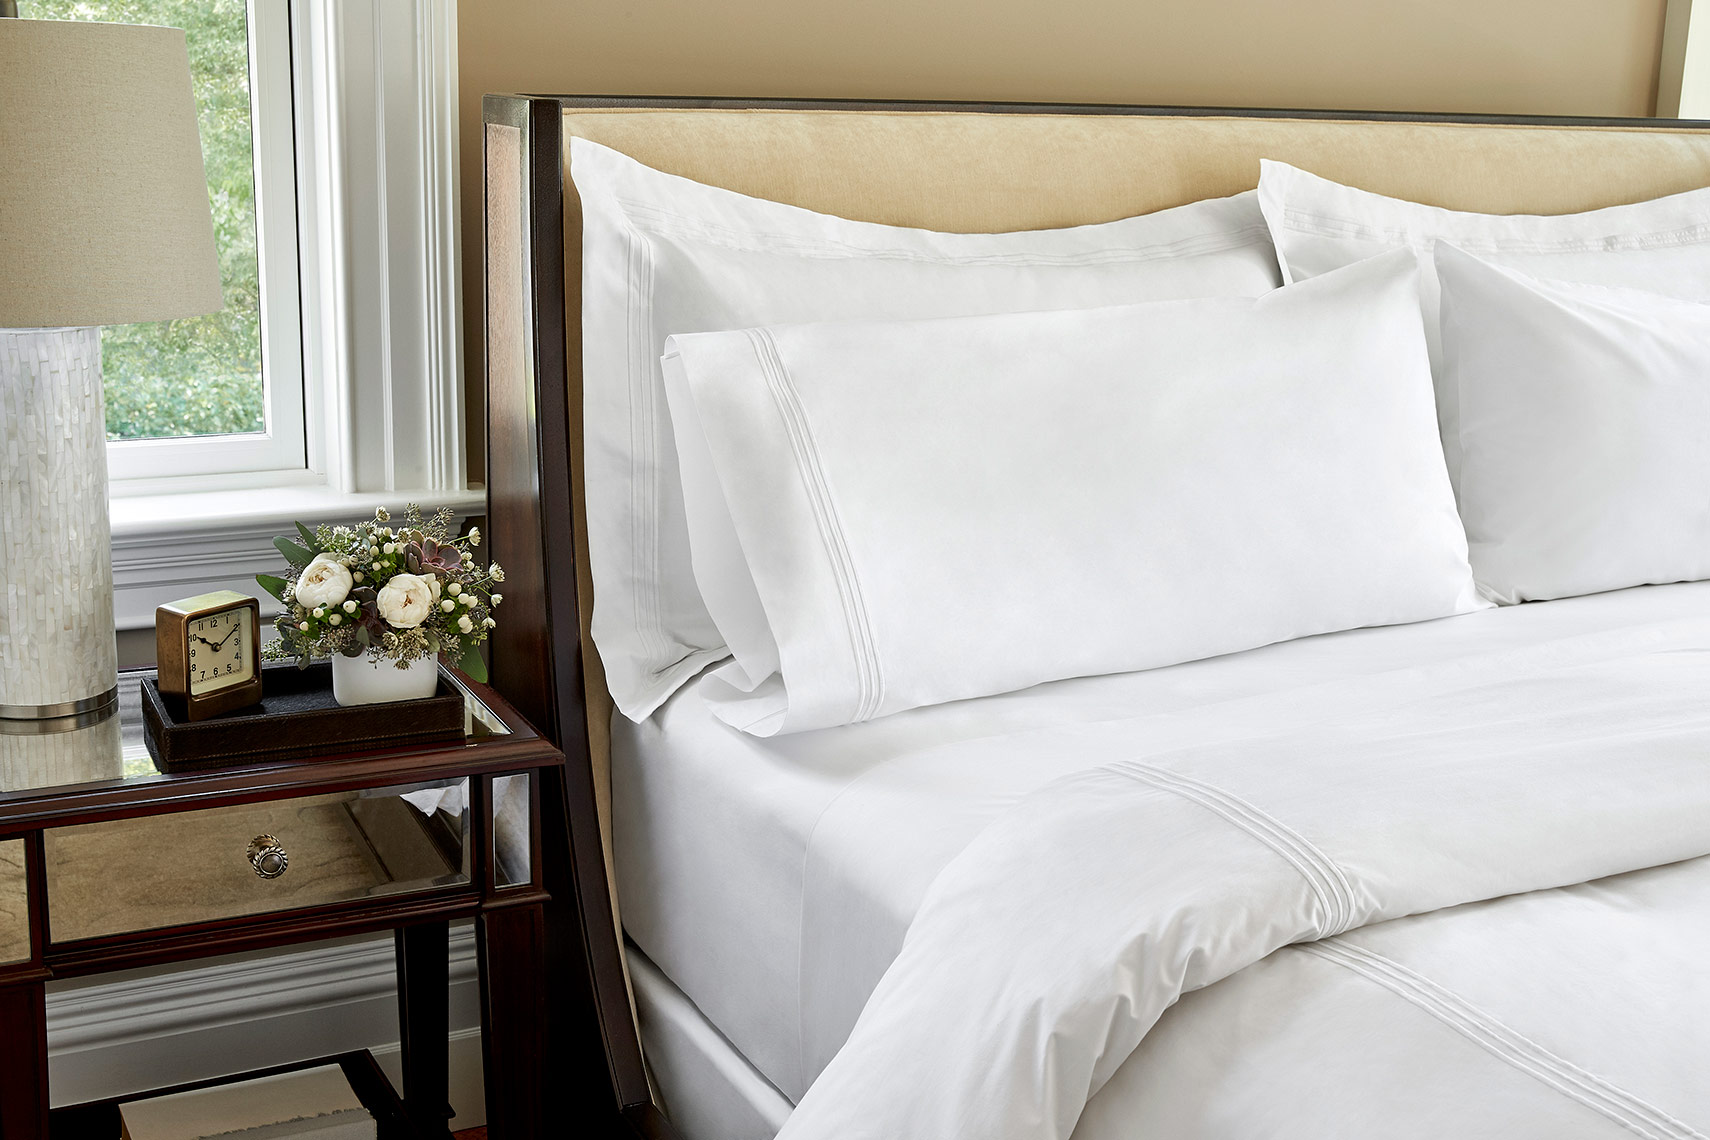 HOTELS-ShopJW34-Embroidered-Pillowcases